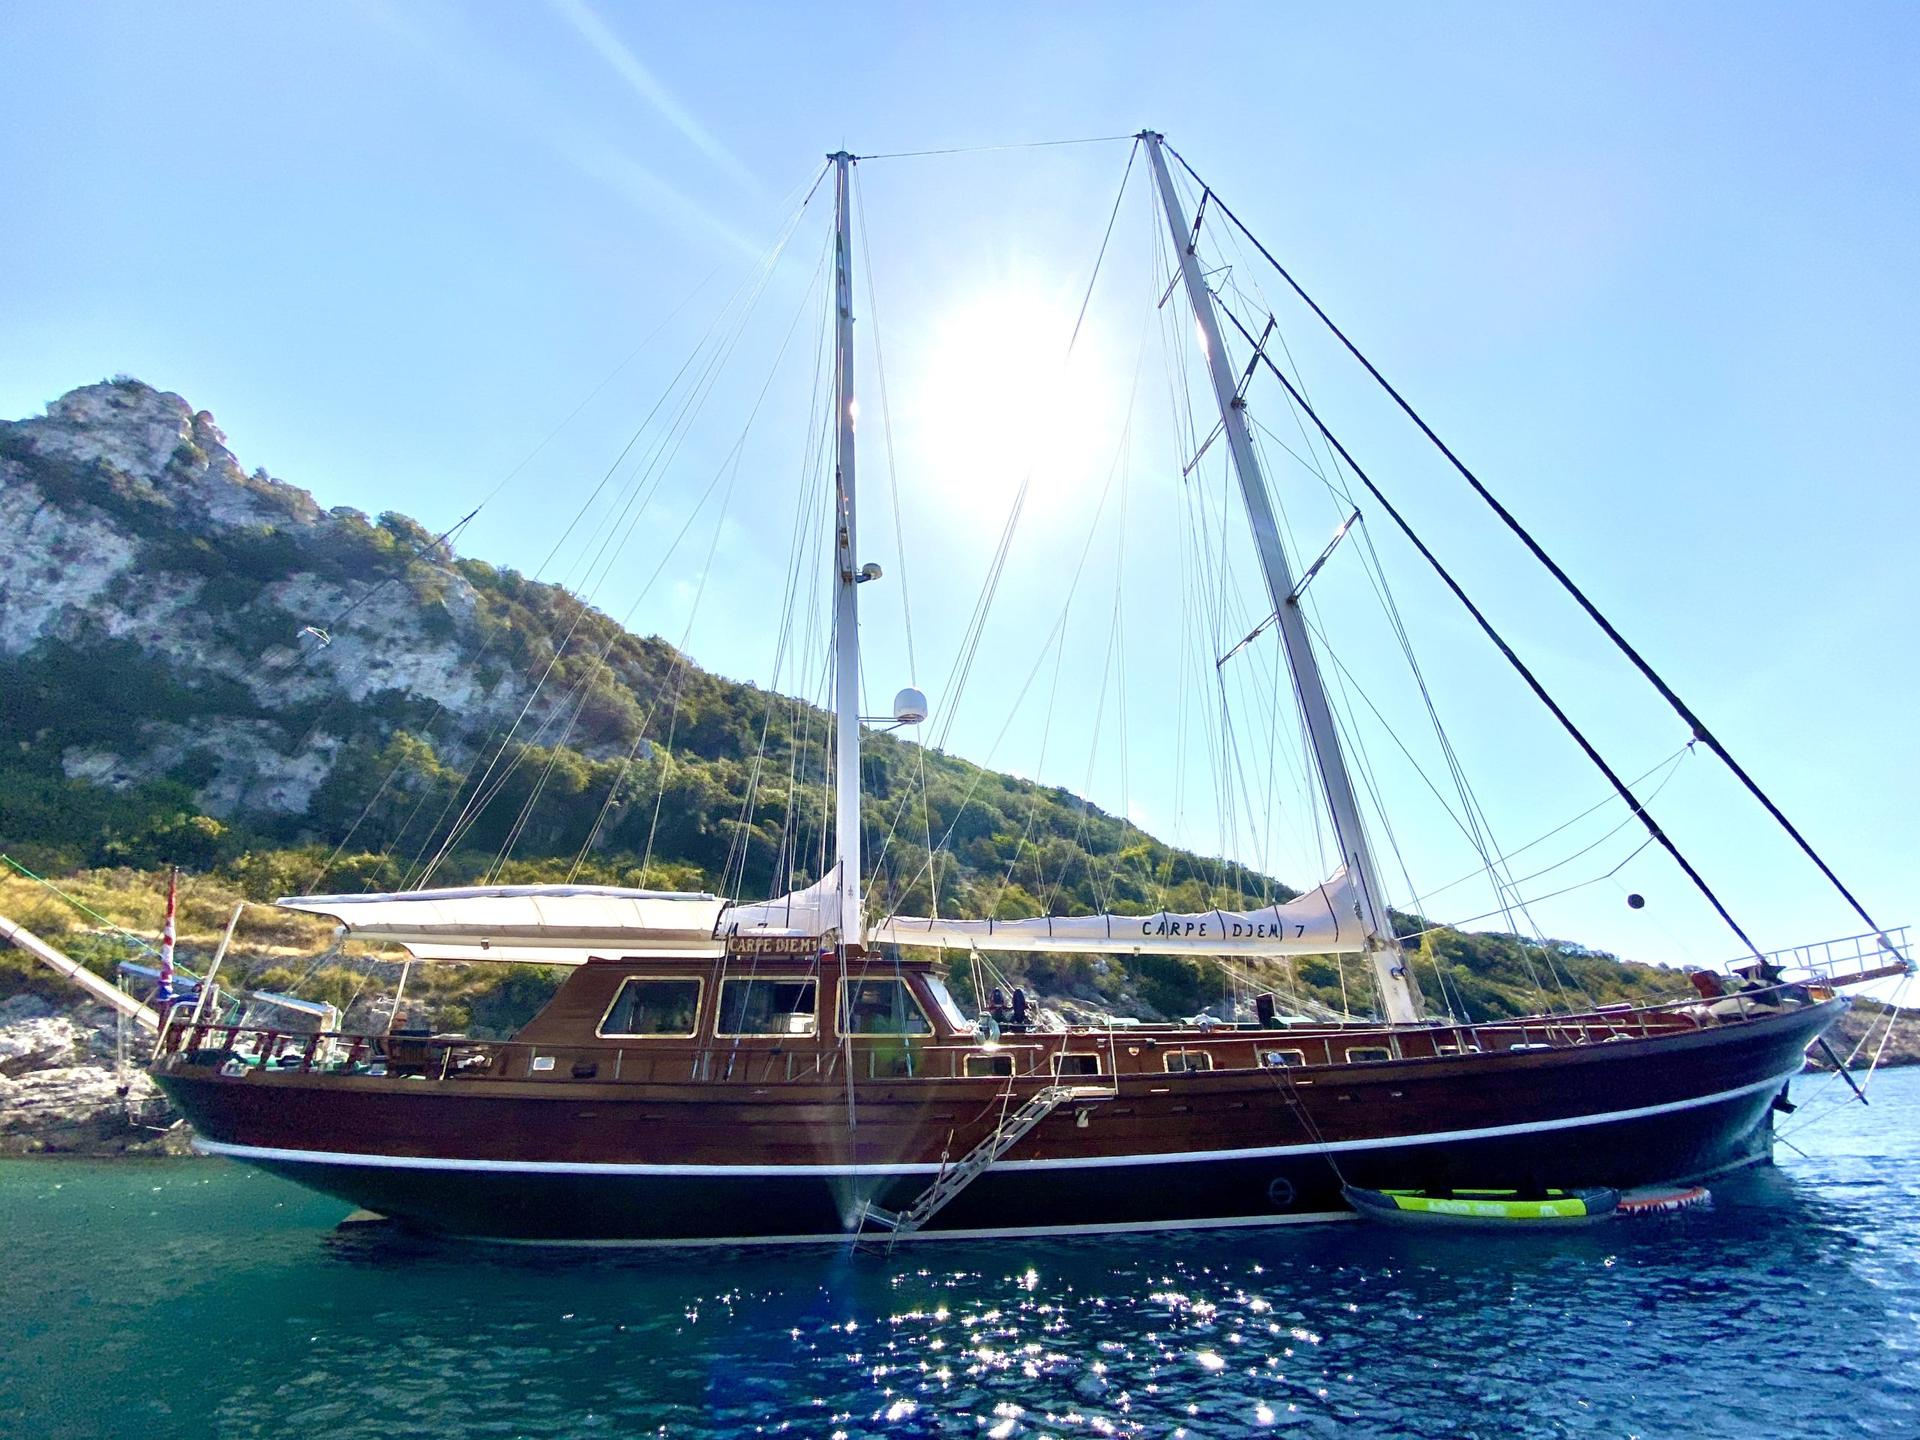 THE GLORY OF CROATIA, SAILING, FOOD AND WINE